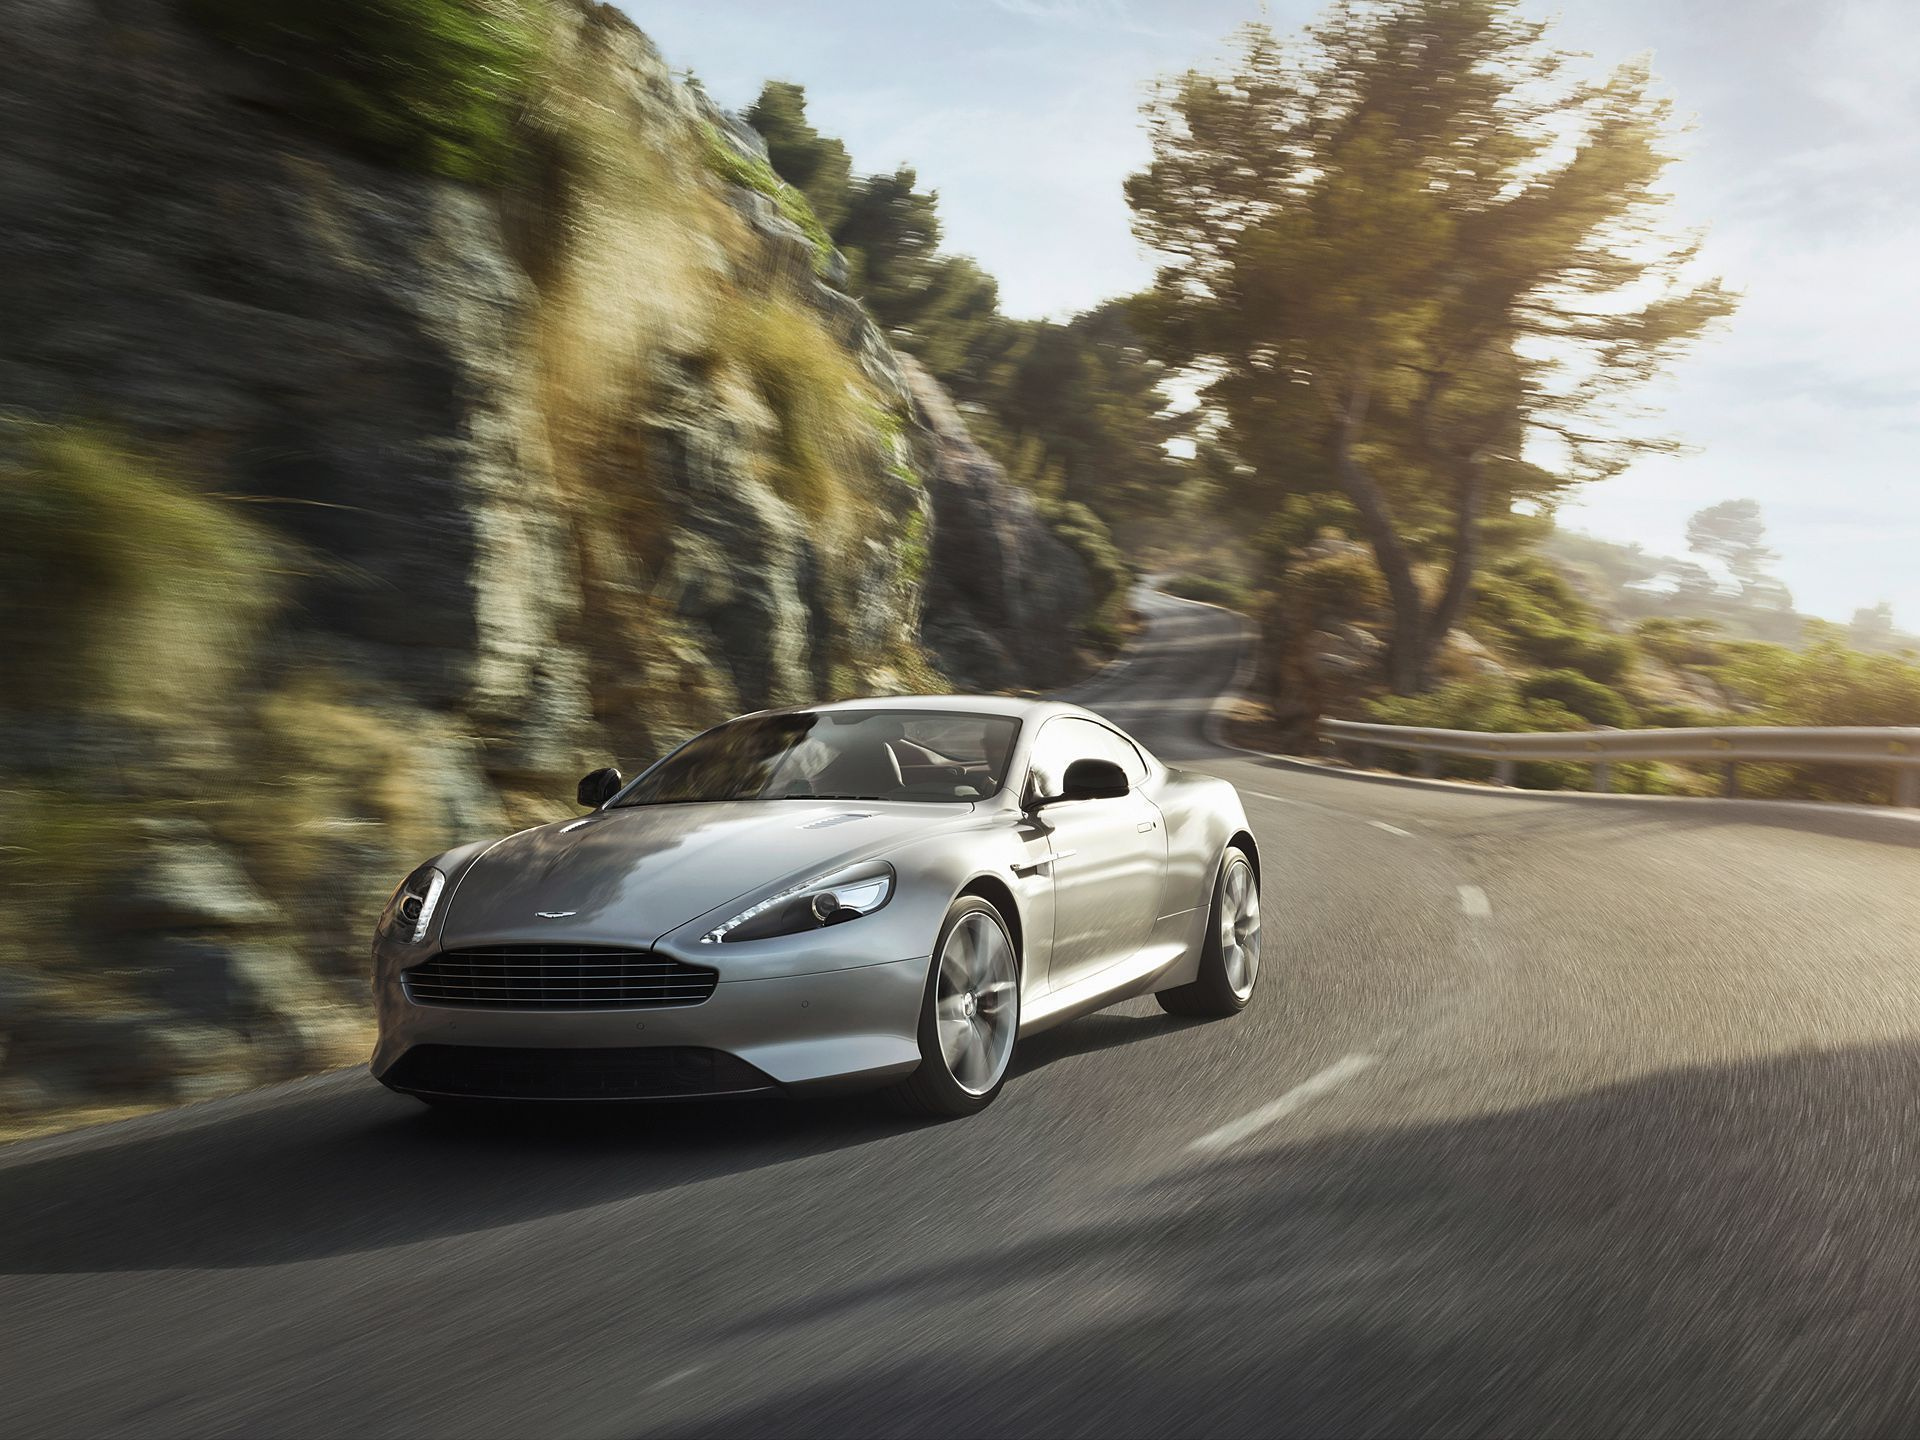 Aston Martin Db9 HD Background